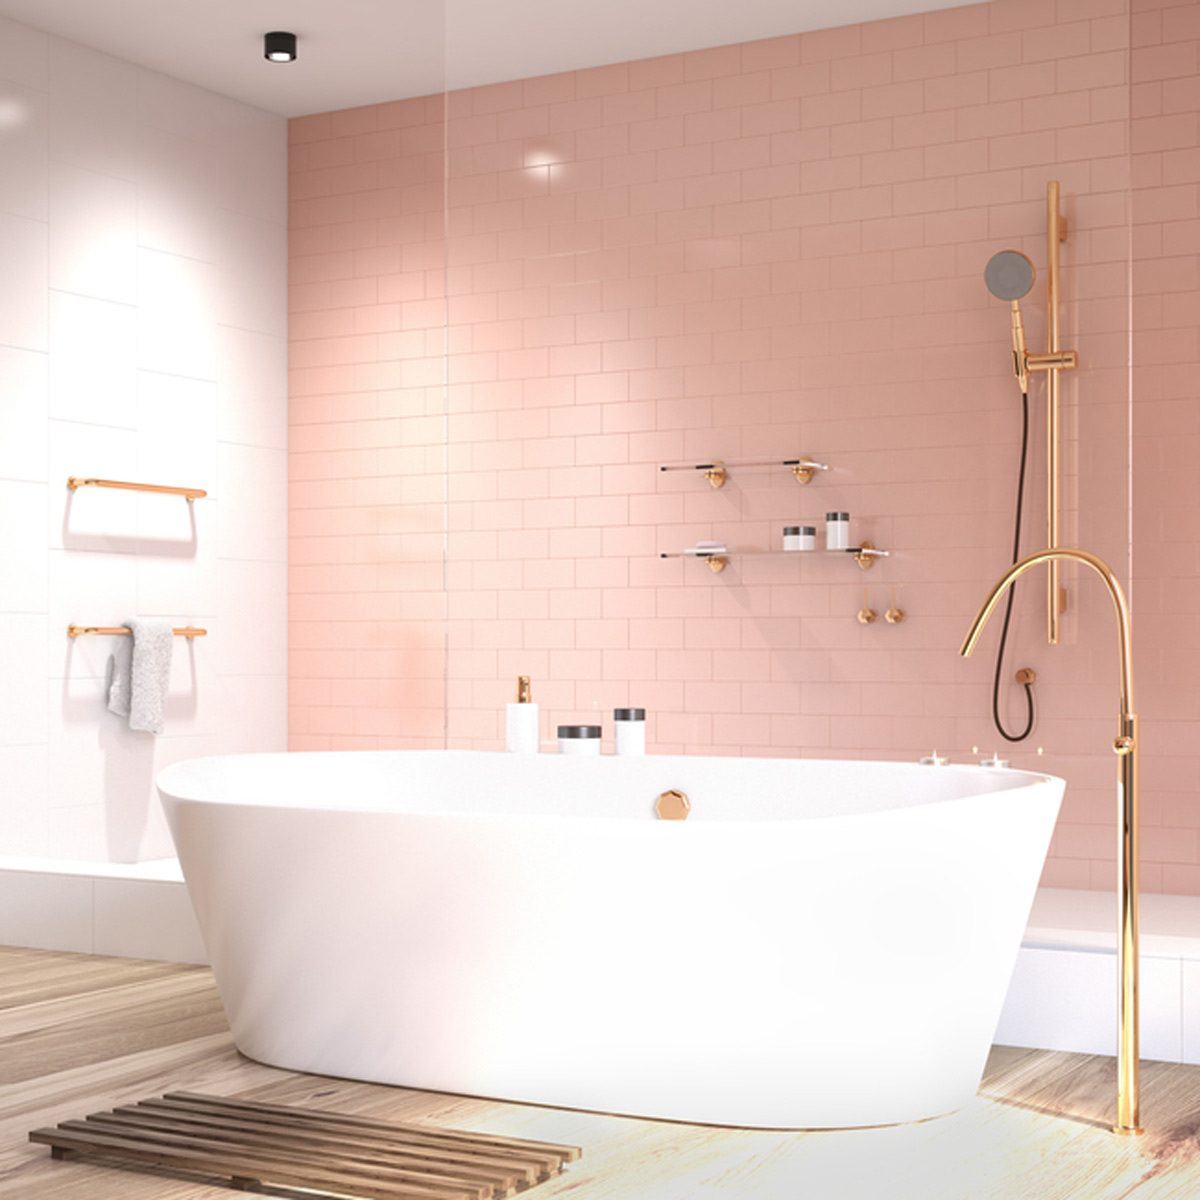 shutterstock_674465893 pink retro bathroom tile bathtub